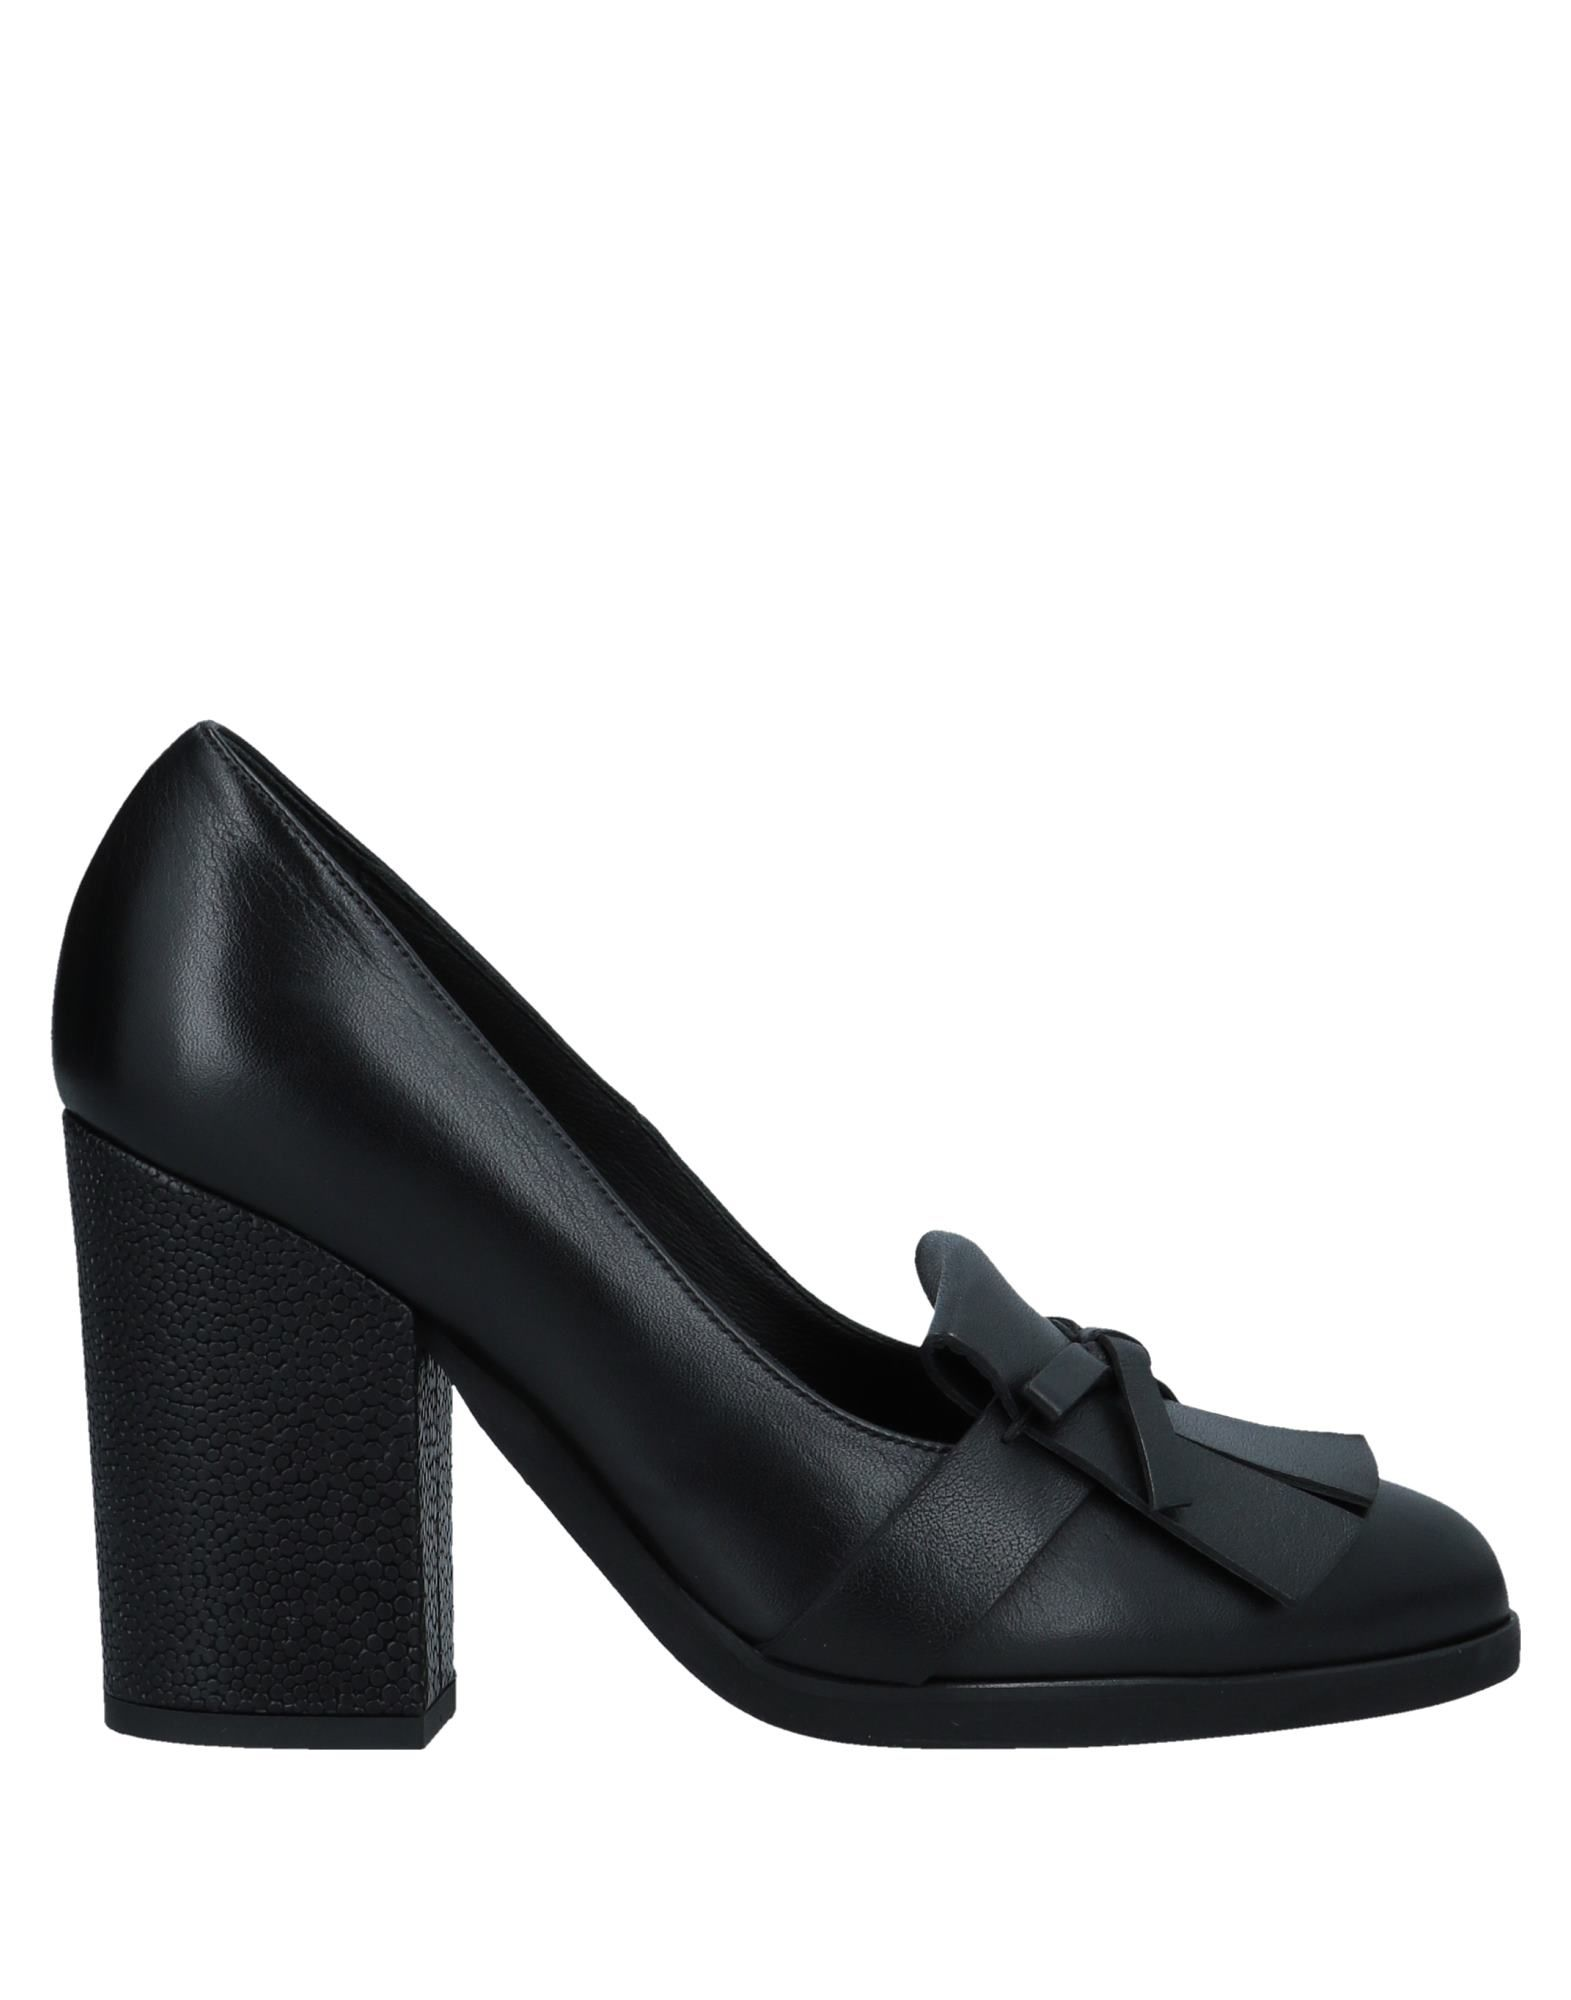 Sgn Giancarlo Paoli Loafers - Women Sgn Giancarlo Paoli Loafers Kingdom online on  United Kingdom Loafers - 11556529BD 03cef8